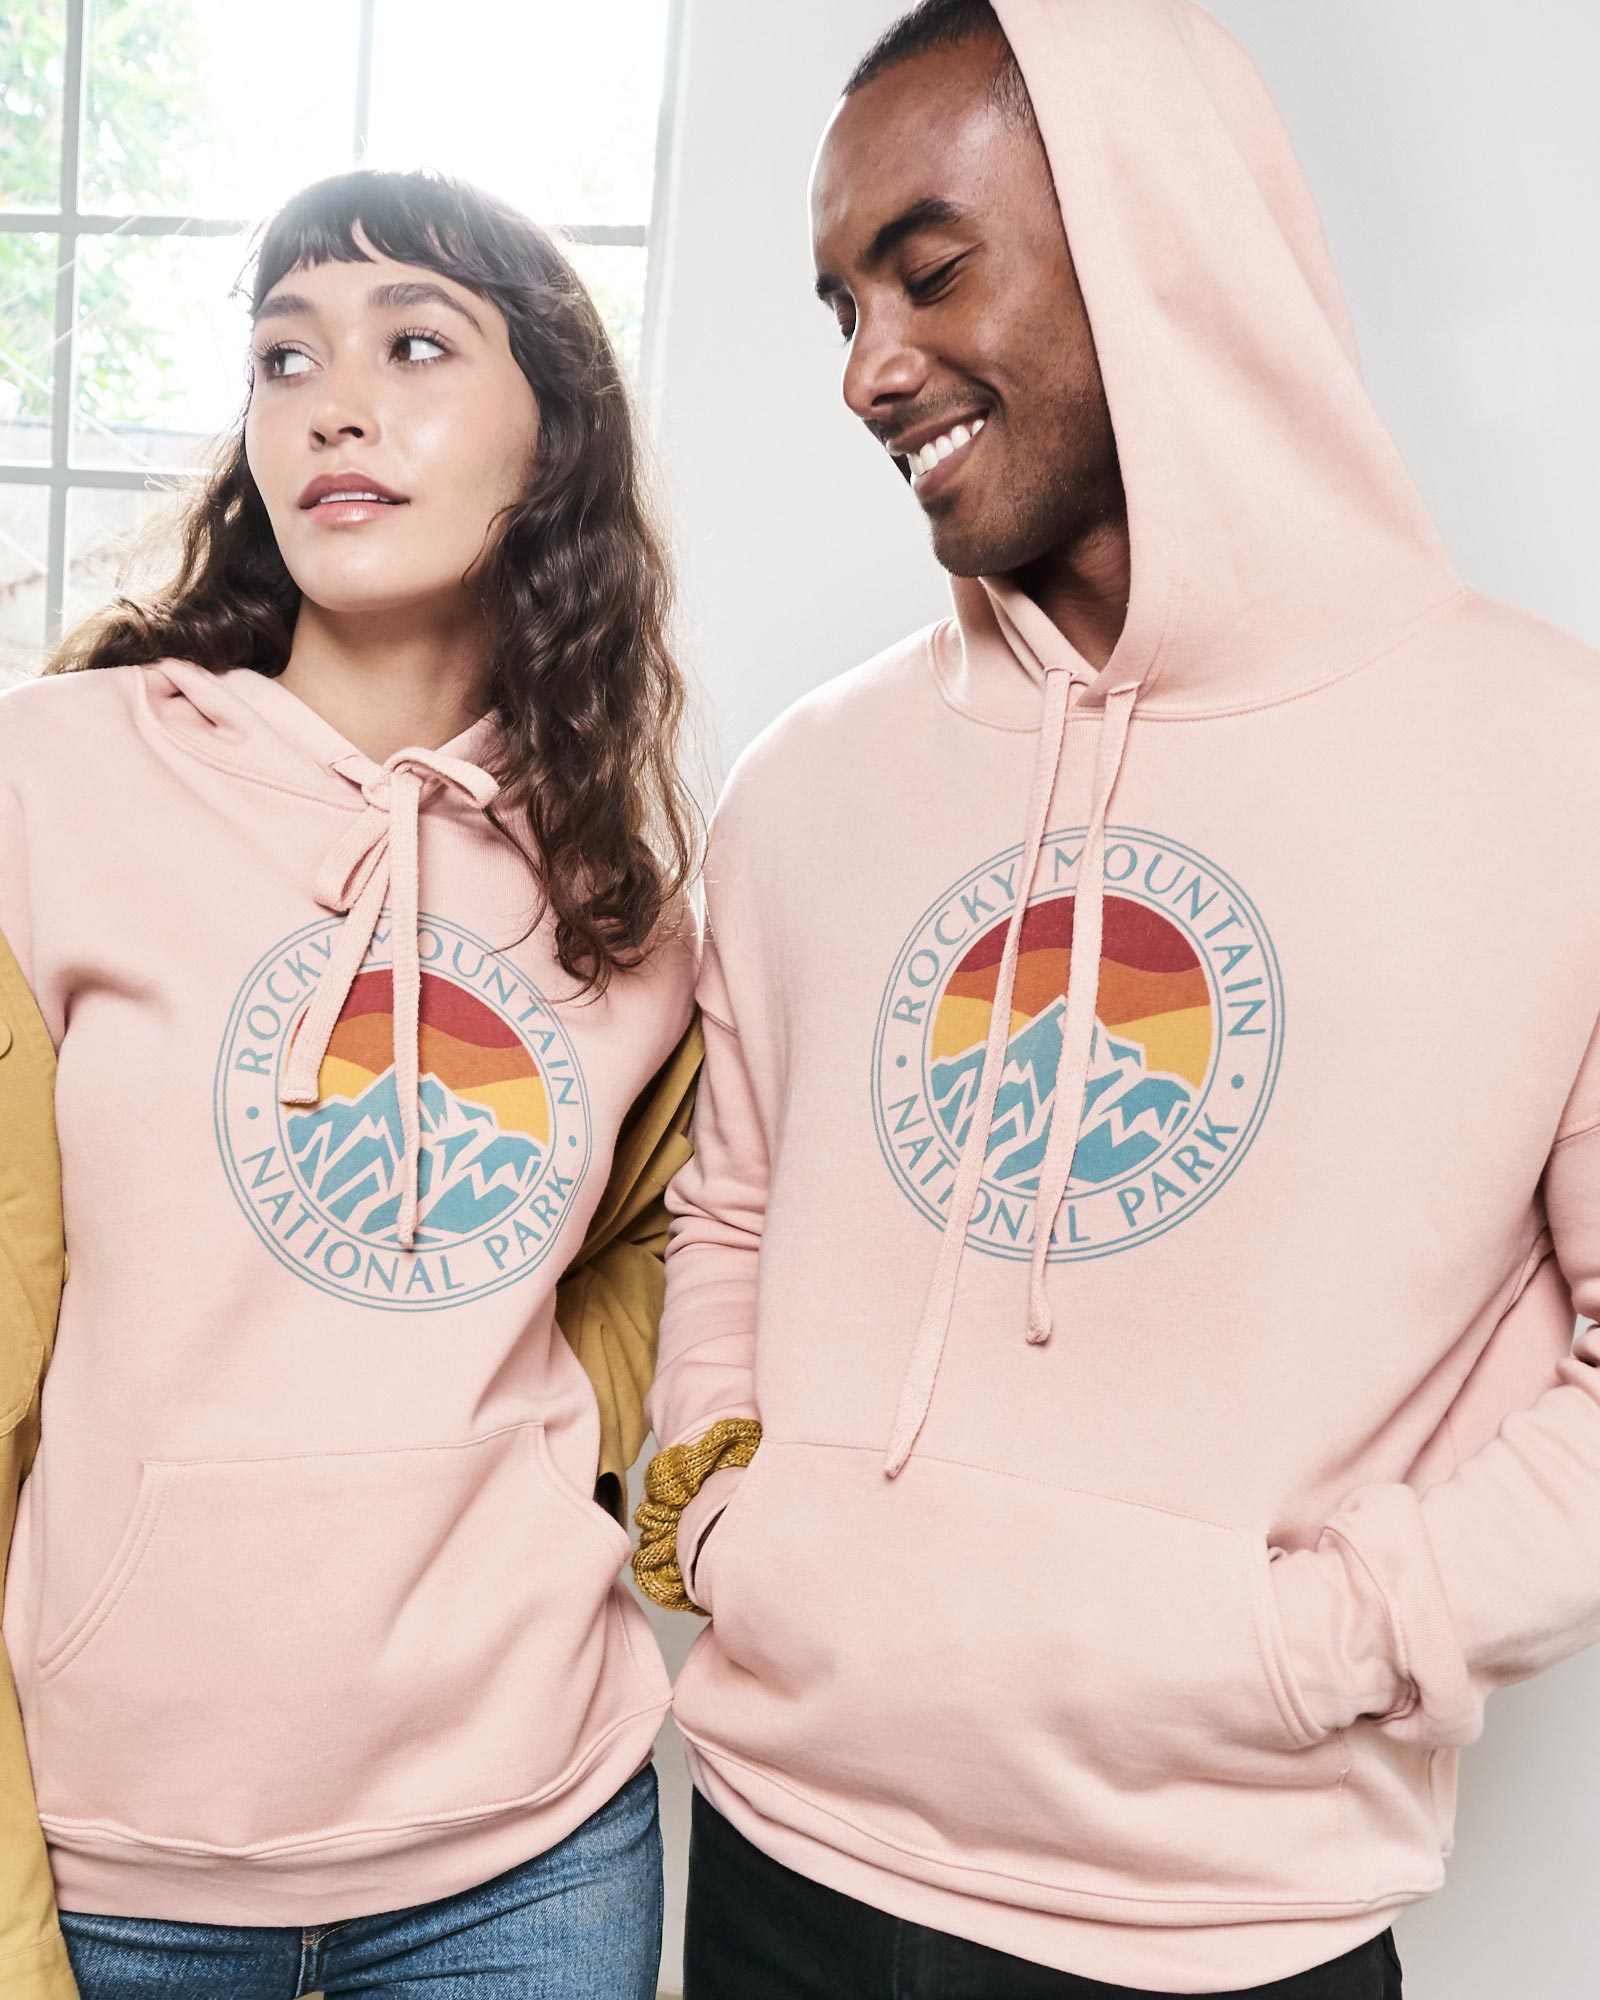 Rocky Mountain Ice Hoodie | Parks Project | National Parks Hoodie